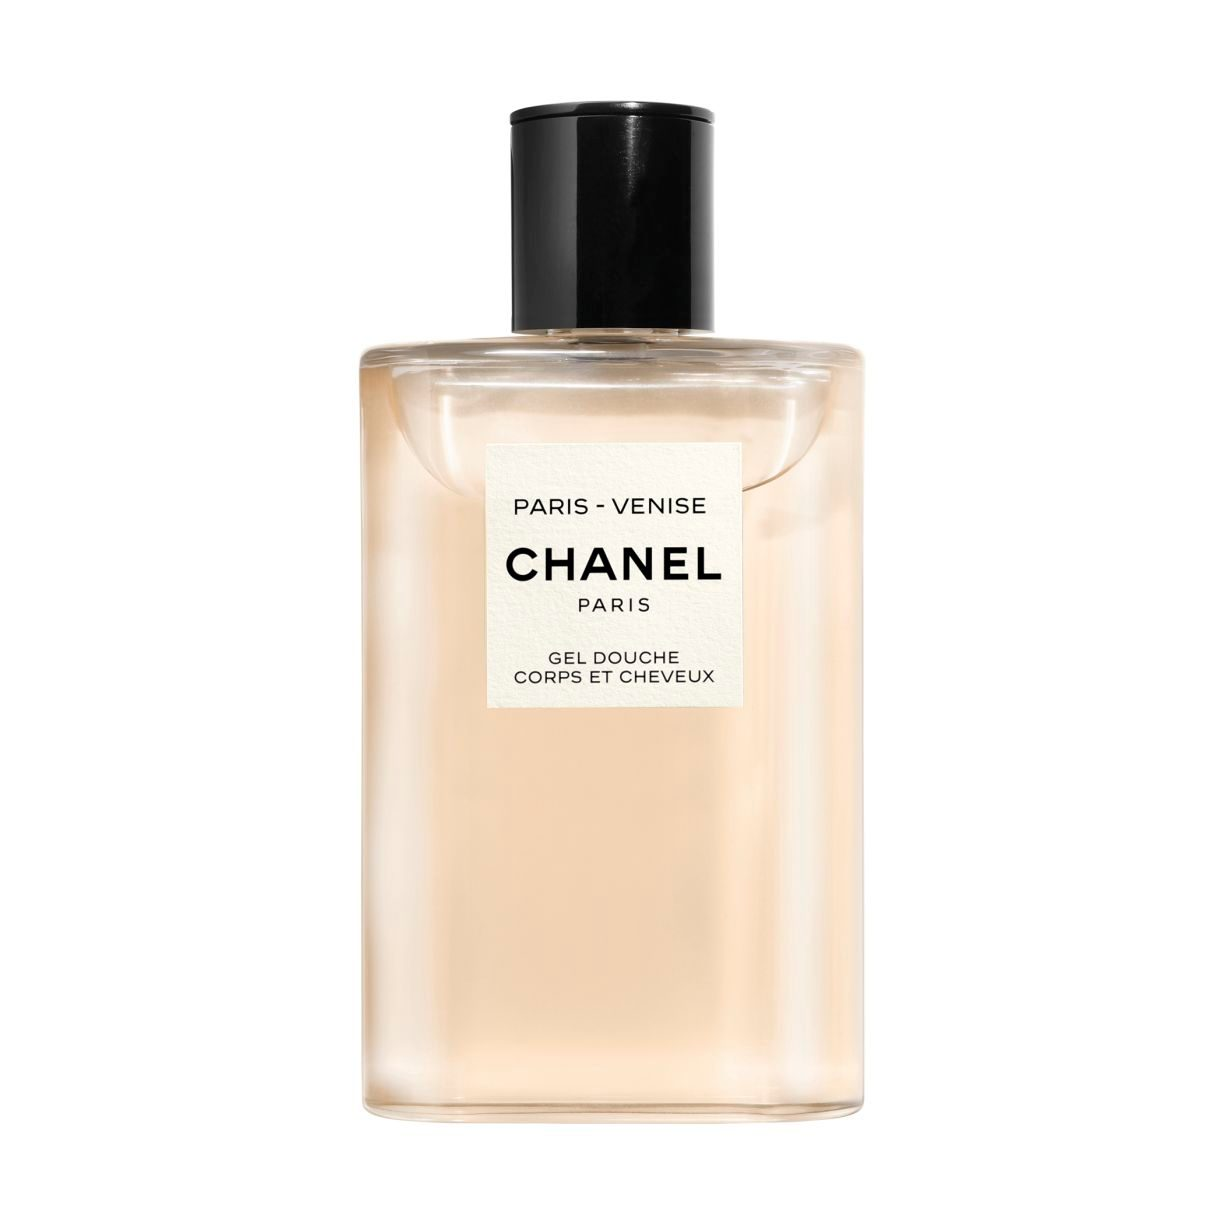 LES EAUX DE CHANEL PARIS - VENISE - HAIR AND BODY SHOWER GEL